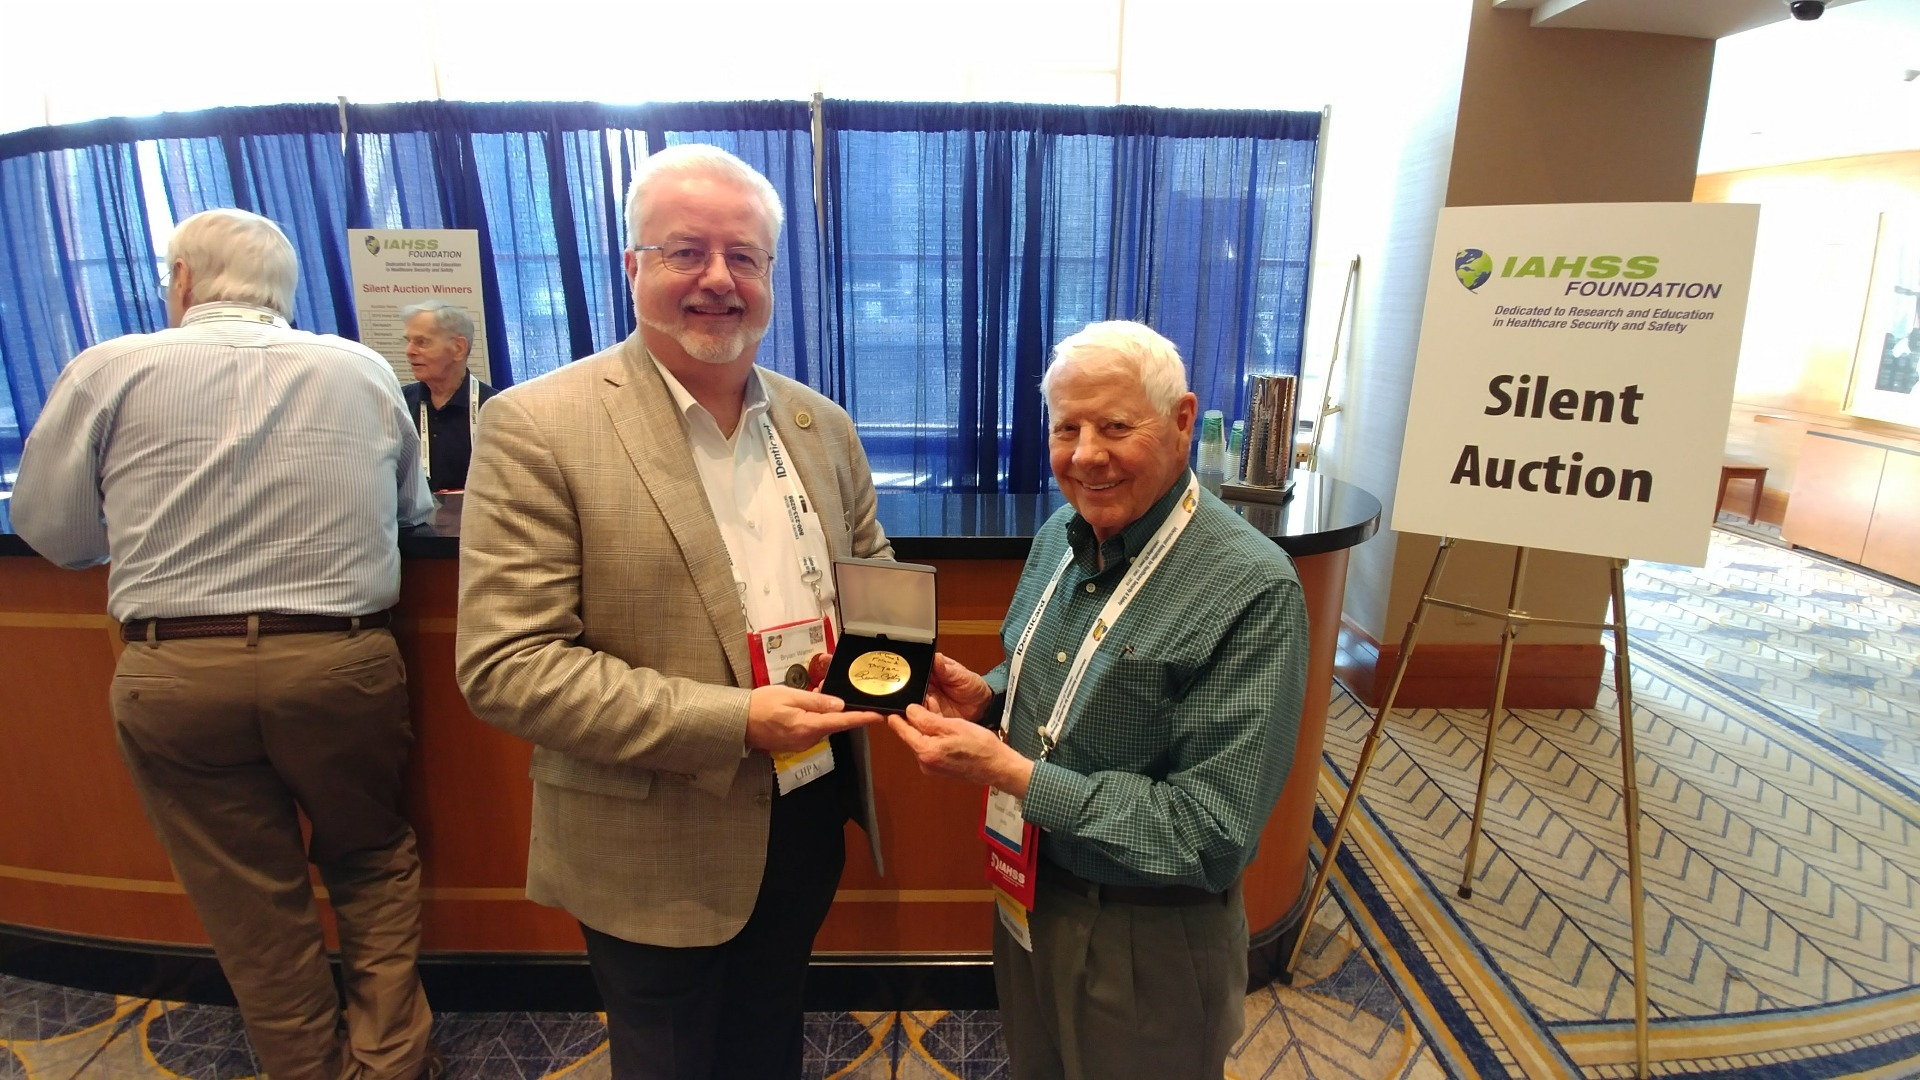 Me and Russ Colling with signed Foundation coin